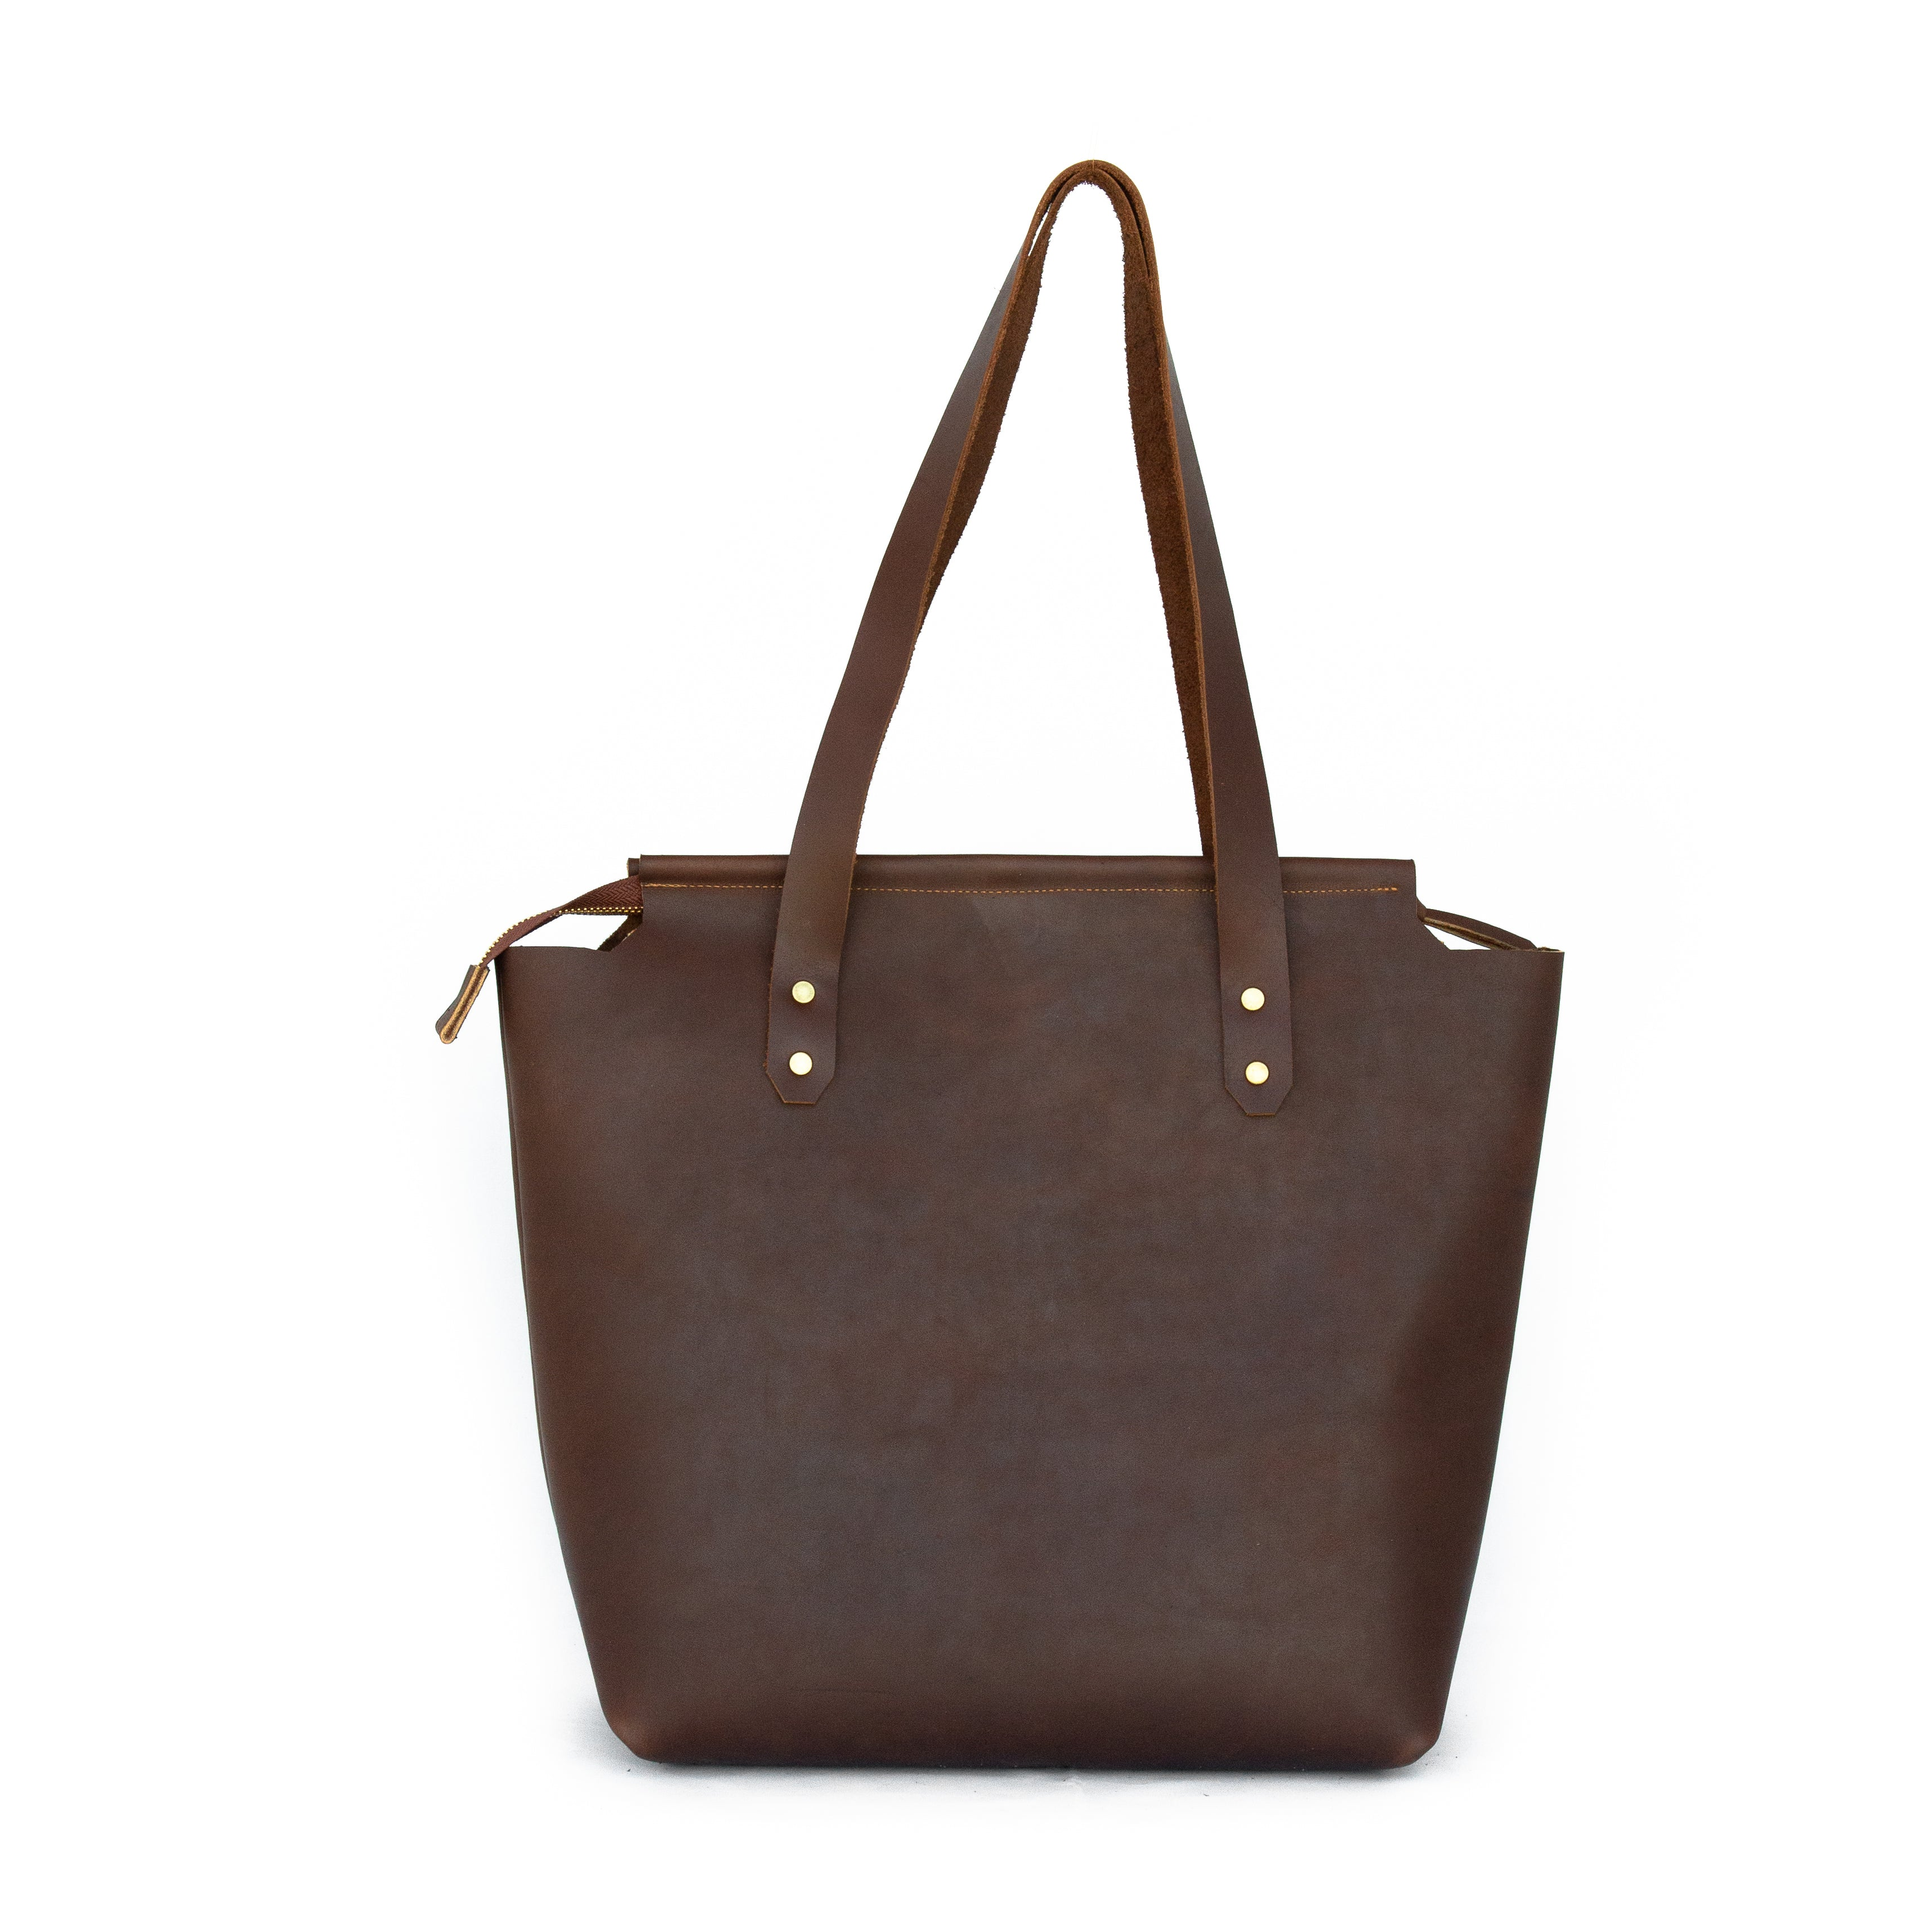 Cut Out Zip Tote in Dark Brown Leather - handcrafted by Market Canvas Leather in Tofino, BC, Canada